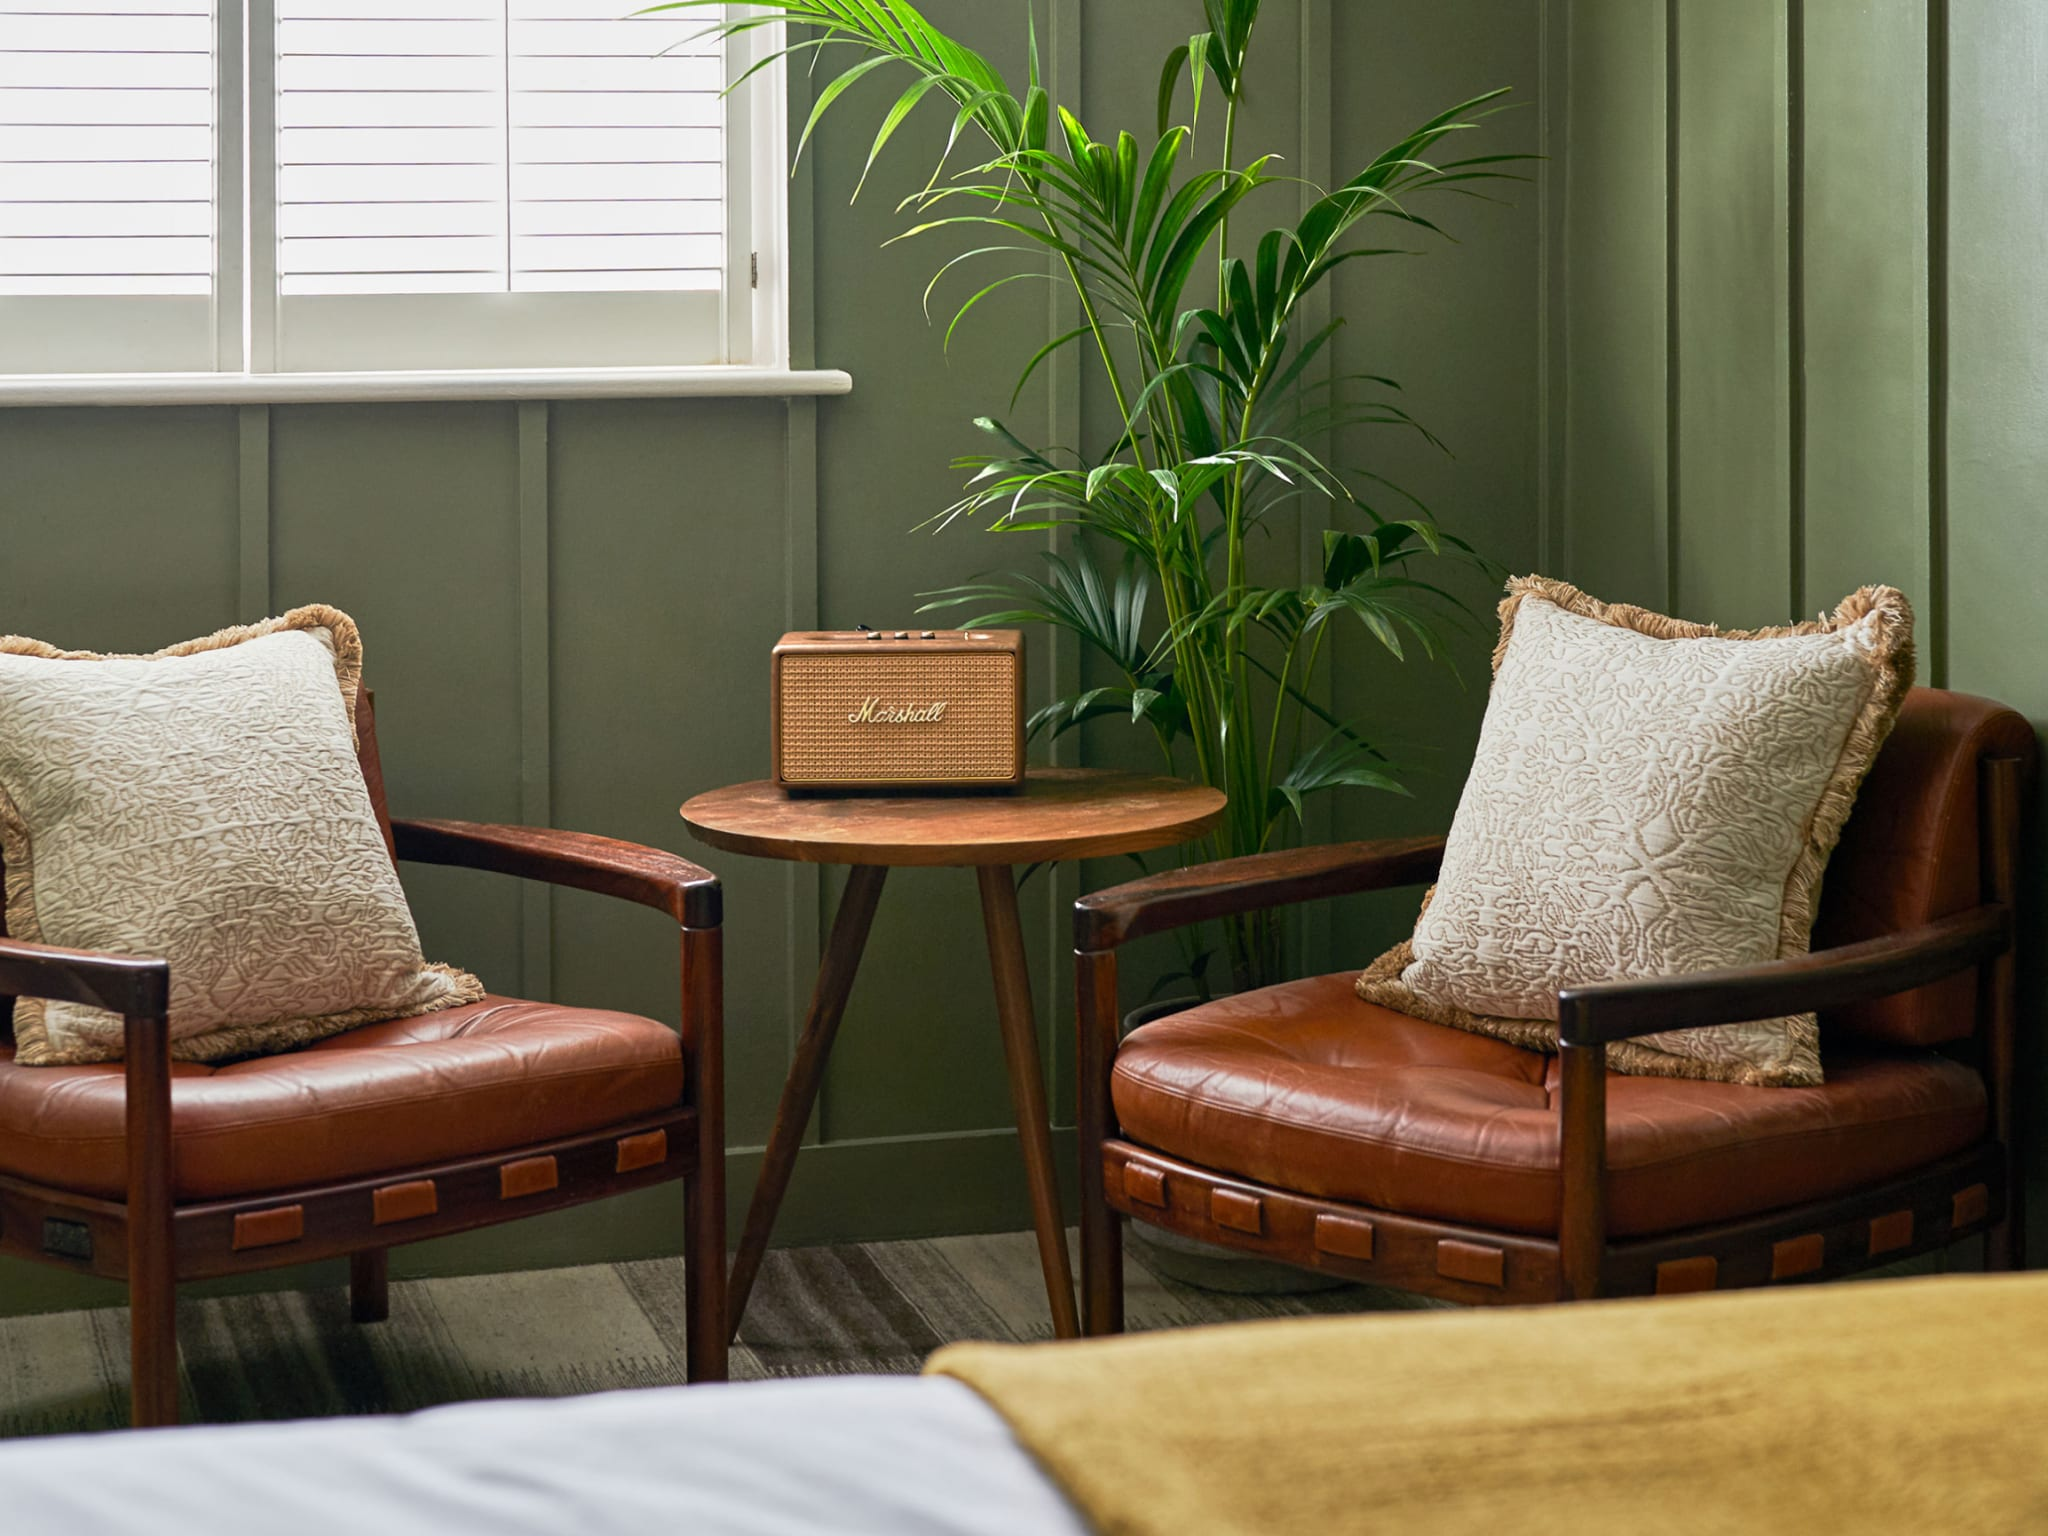 A coffee table and two chairs at the end of a bed in a green bedroom.